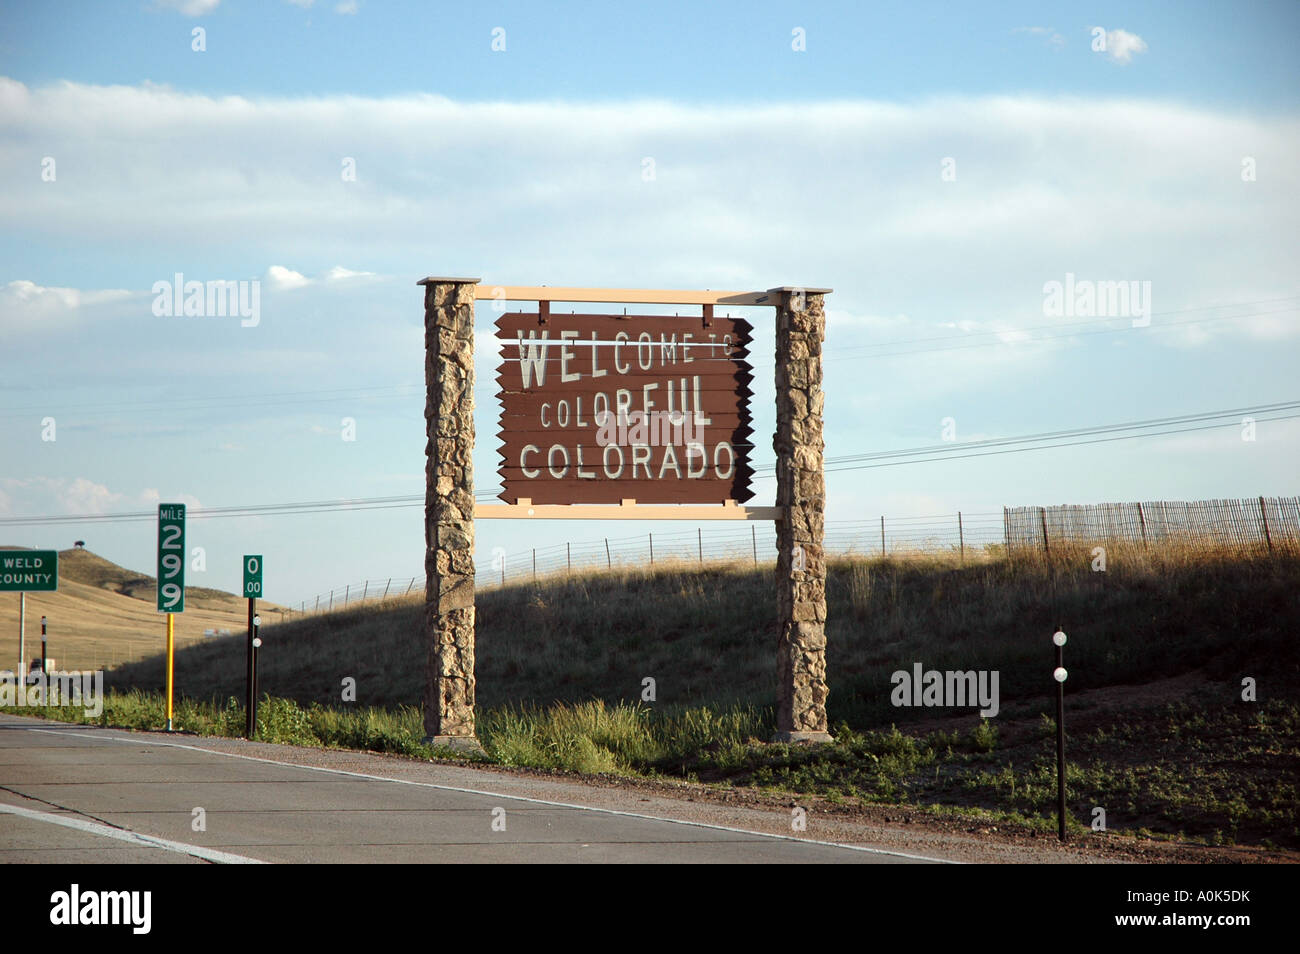 P31 142 Welcome to Colorado sign - Stock Image